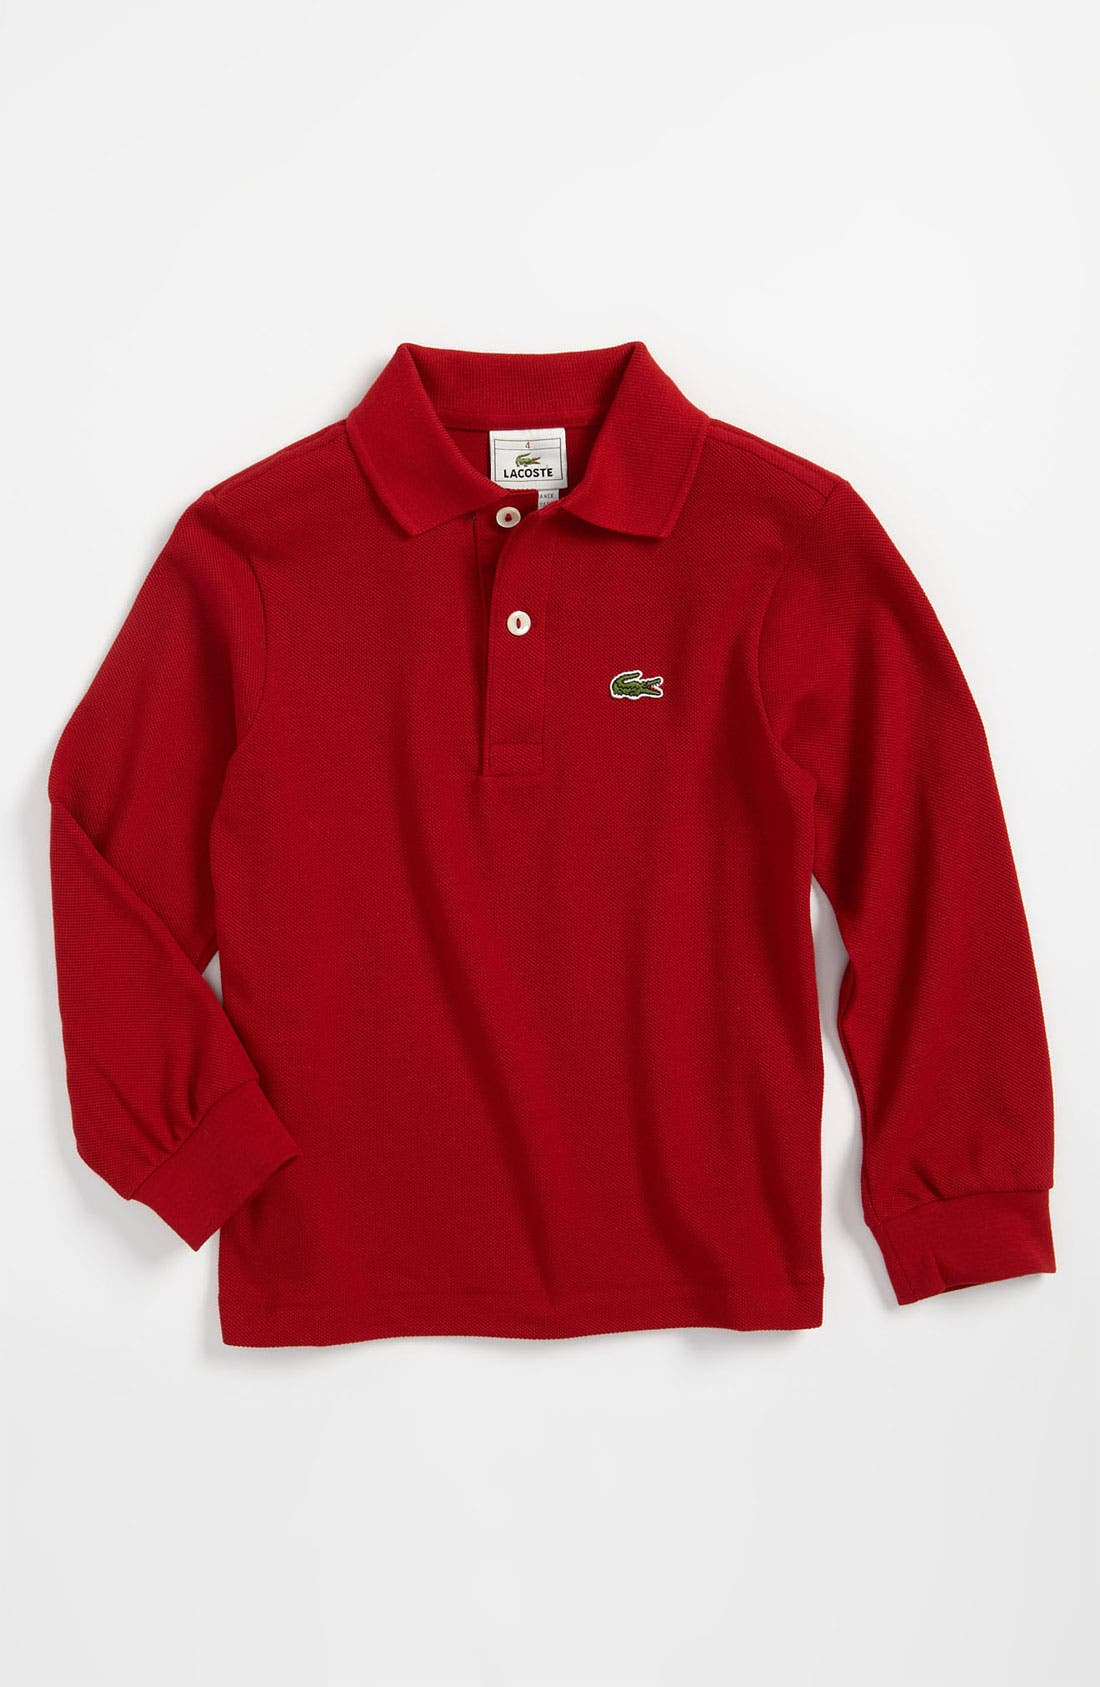 Main Image - Lacoste Classic Long Sleeve Piqué Polo (Toddler)